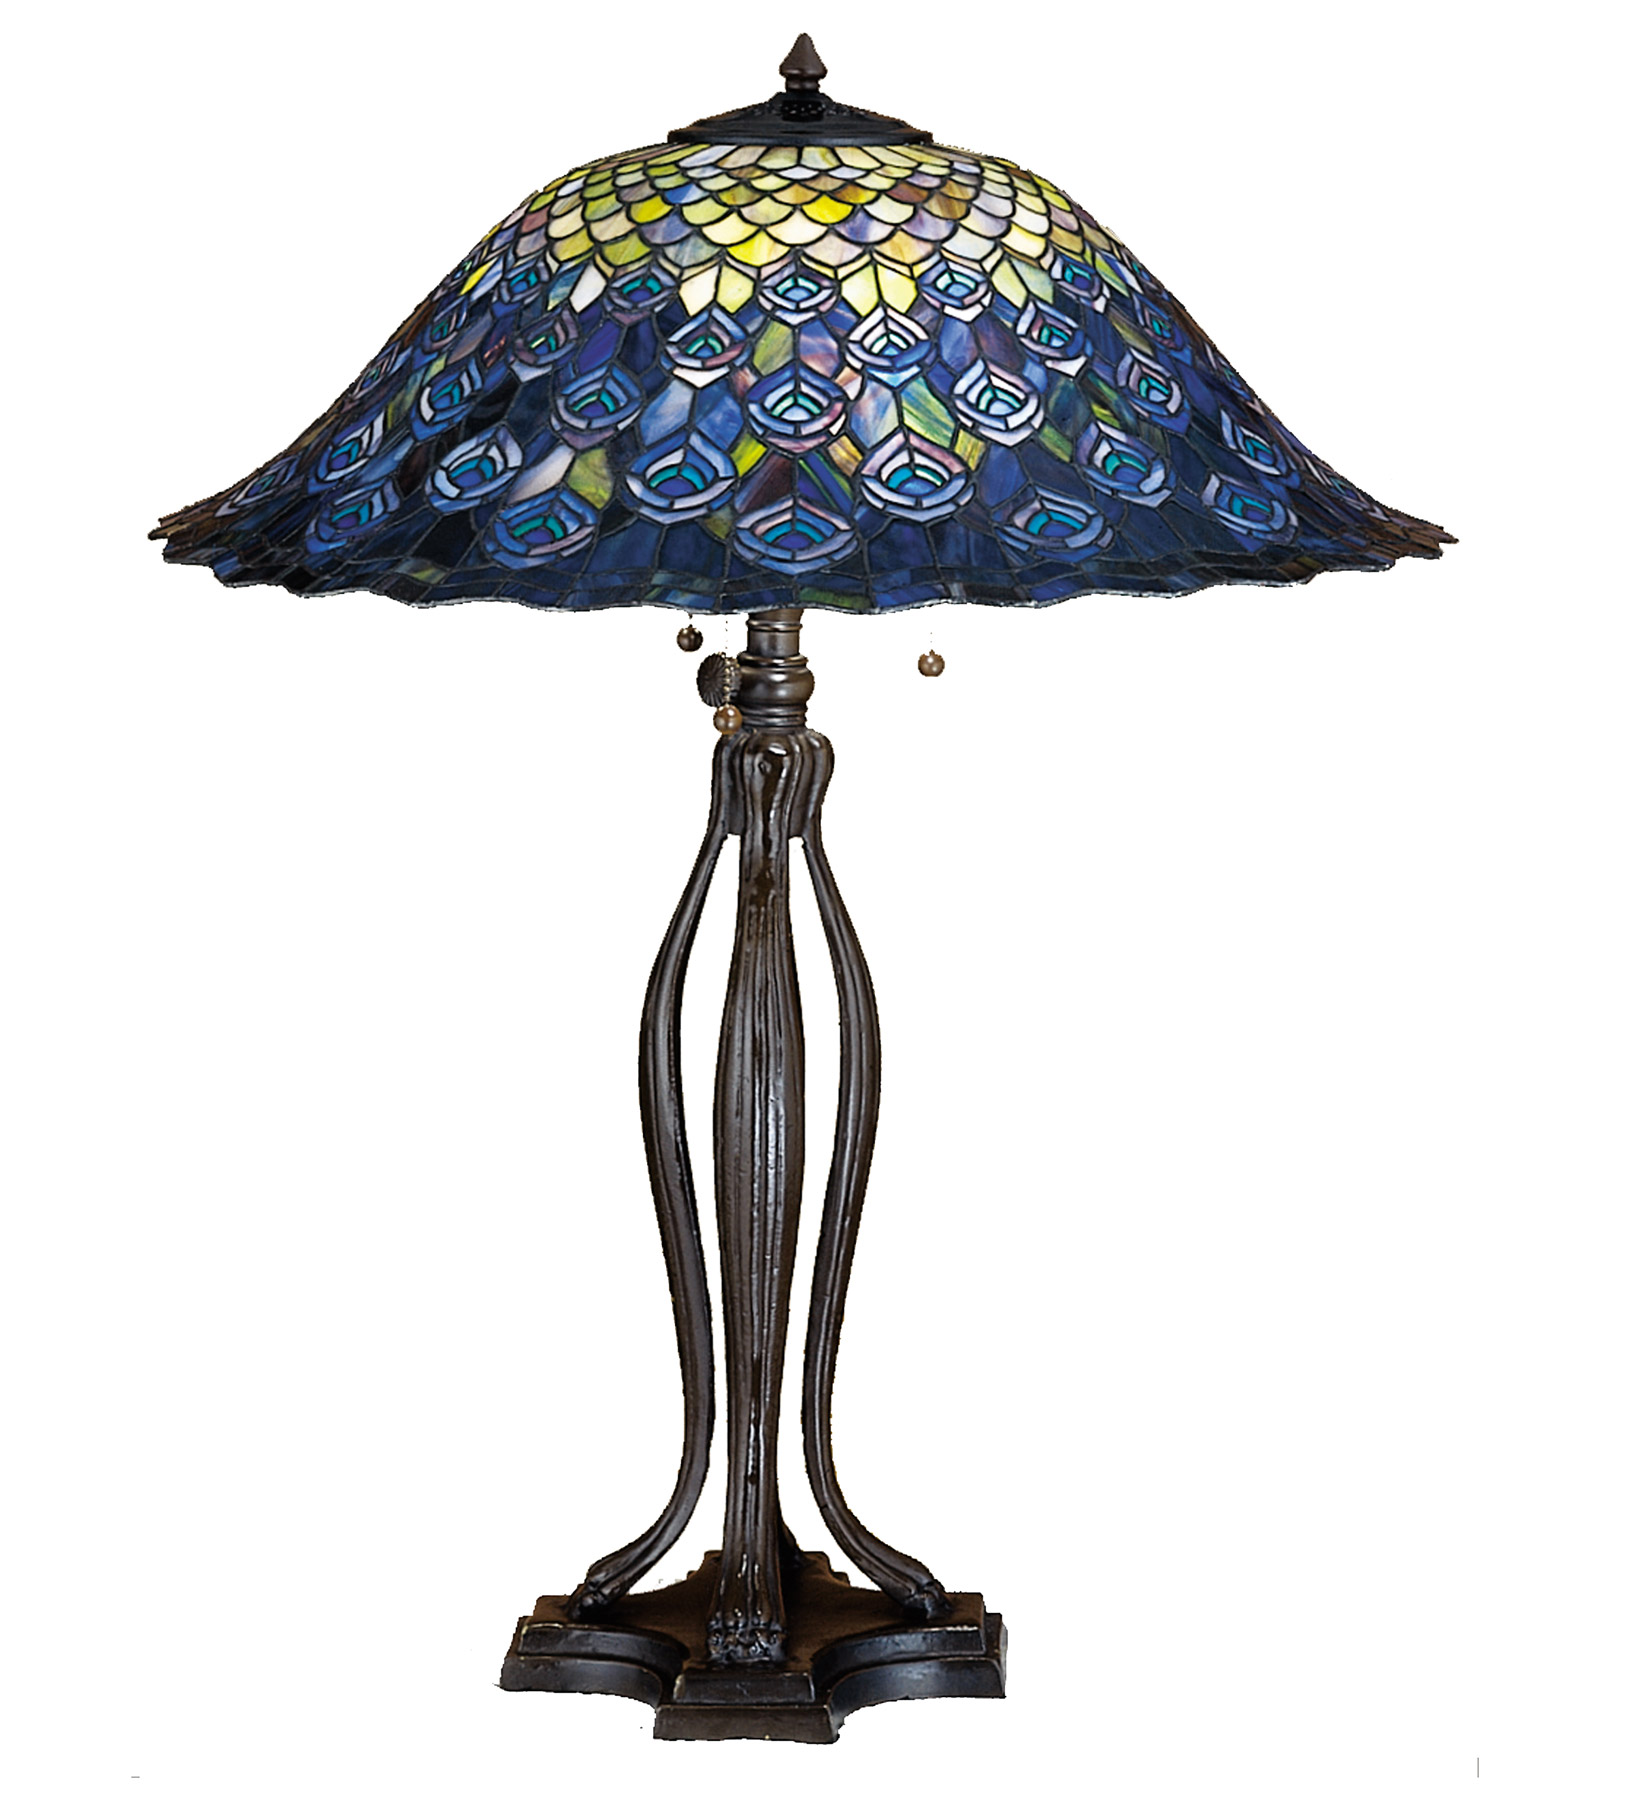 meyda tiffany peacock feather table lamp accent lamps black dining room chairs iron end elephant sculpture ethan allen gold entryway console magnussen side bathroom furniture